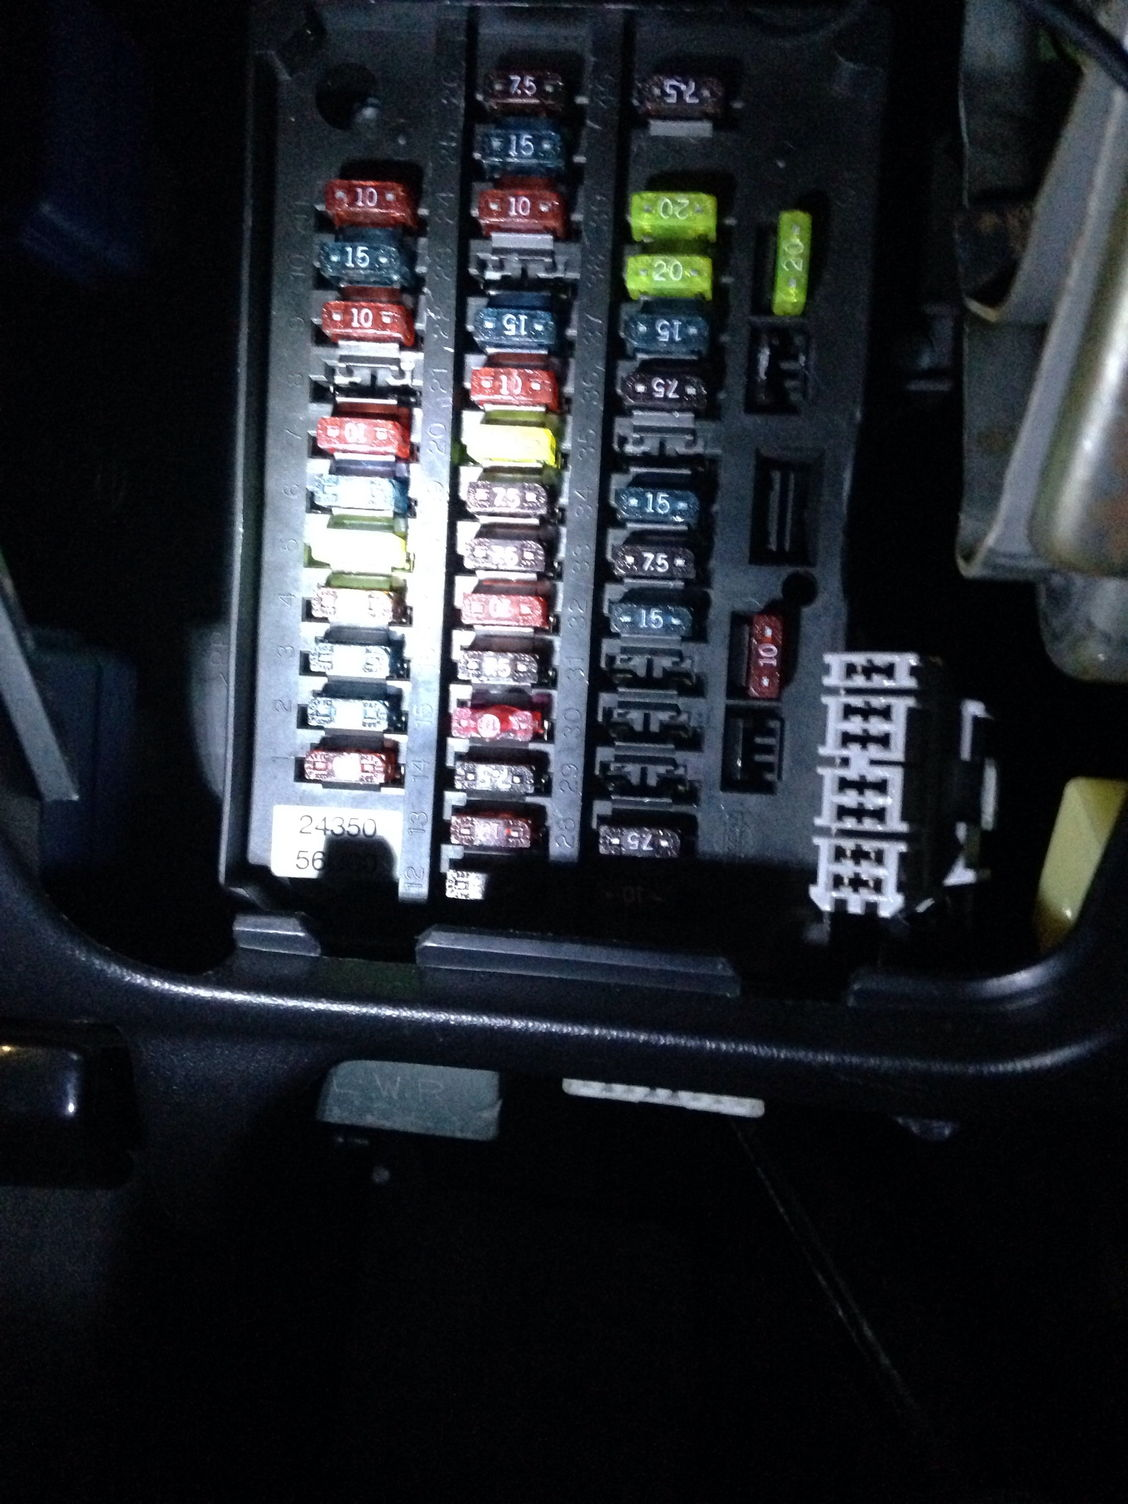 99 Nissan Sentra Fuse Box Trusted Wiring Diagram 2010 Maxima Location Library 2006